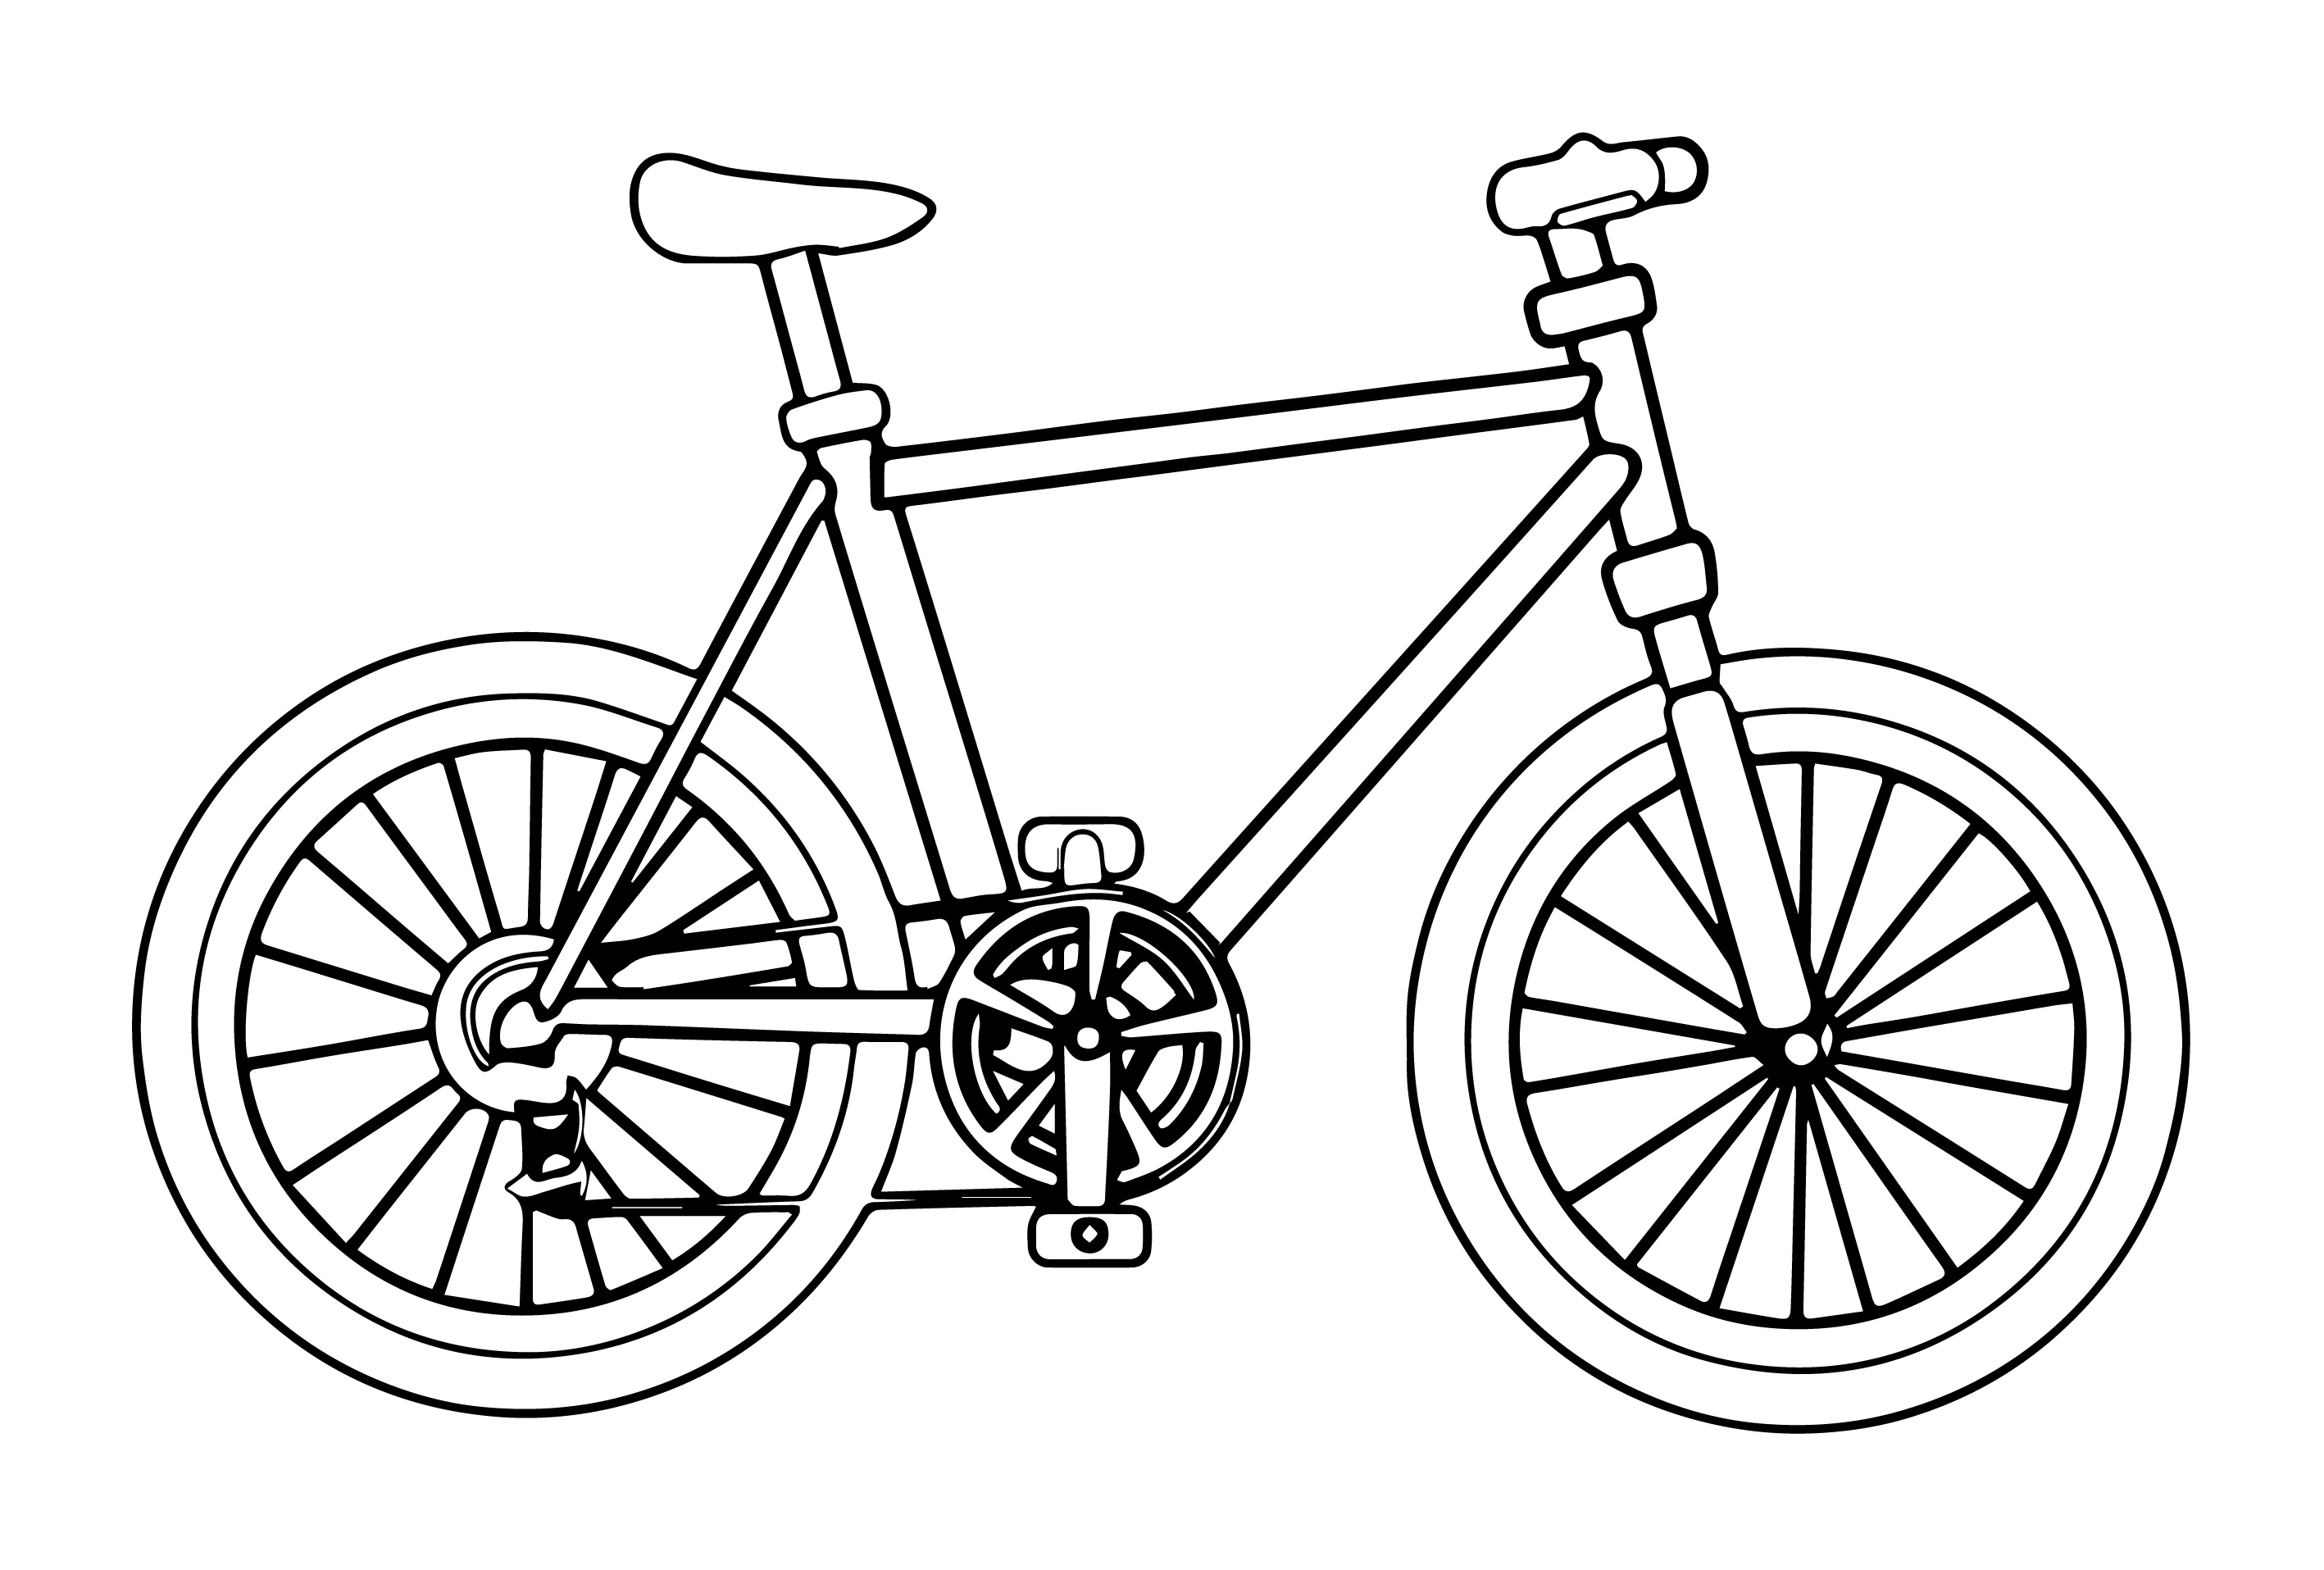 bike coloring pages bicycle coloring pages by daniel free printables pages coloring bike